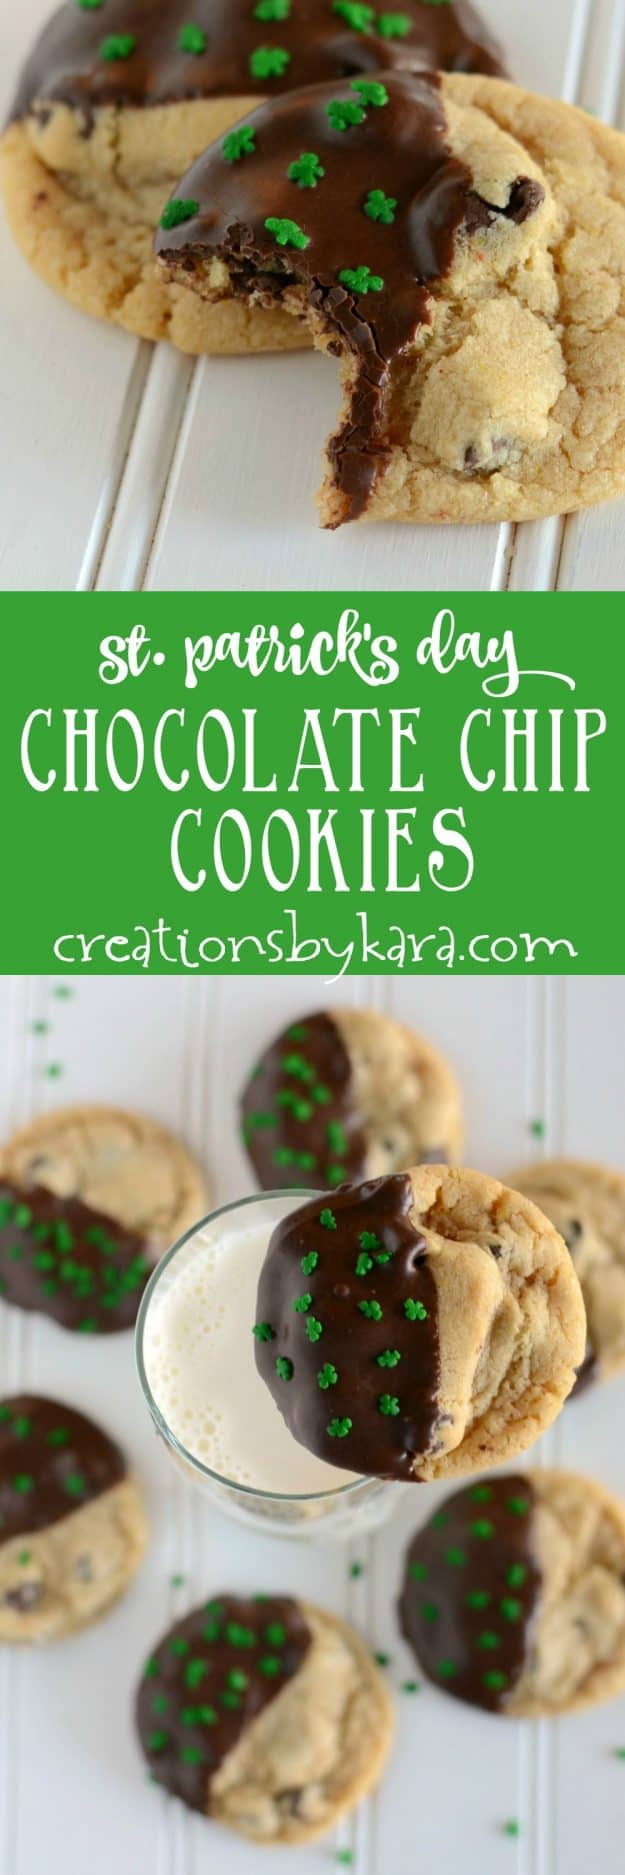 With cute shamrock sprinkles, these dipped chocolate chip cookies are a perfect St. Patricks Day treat!